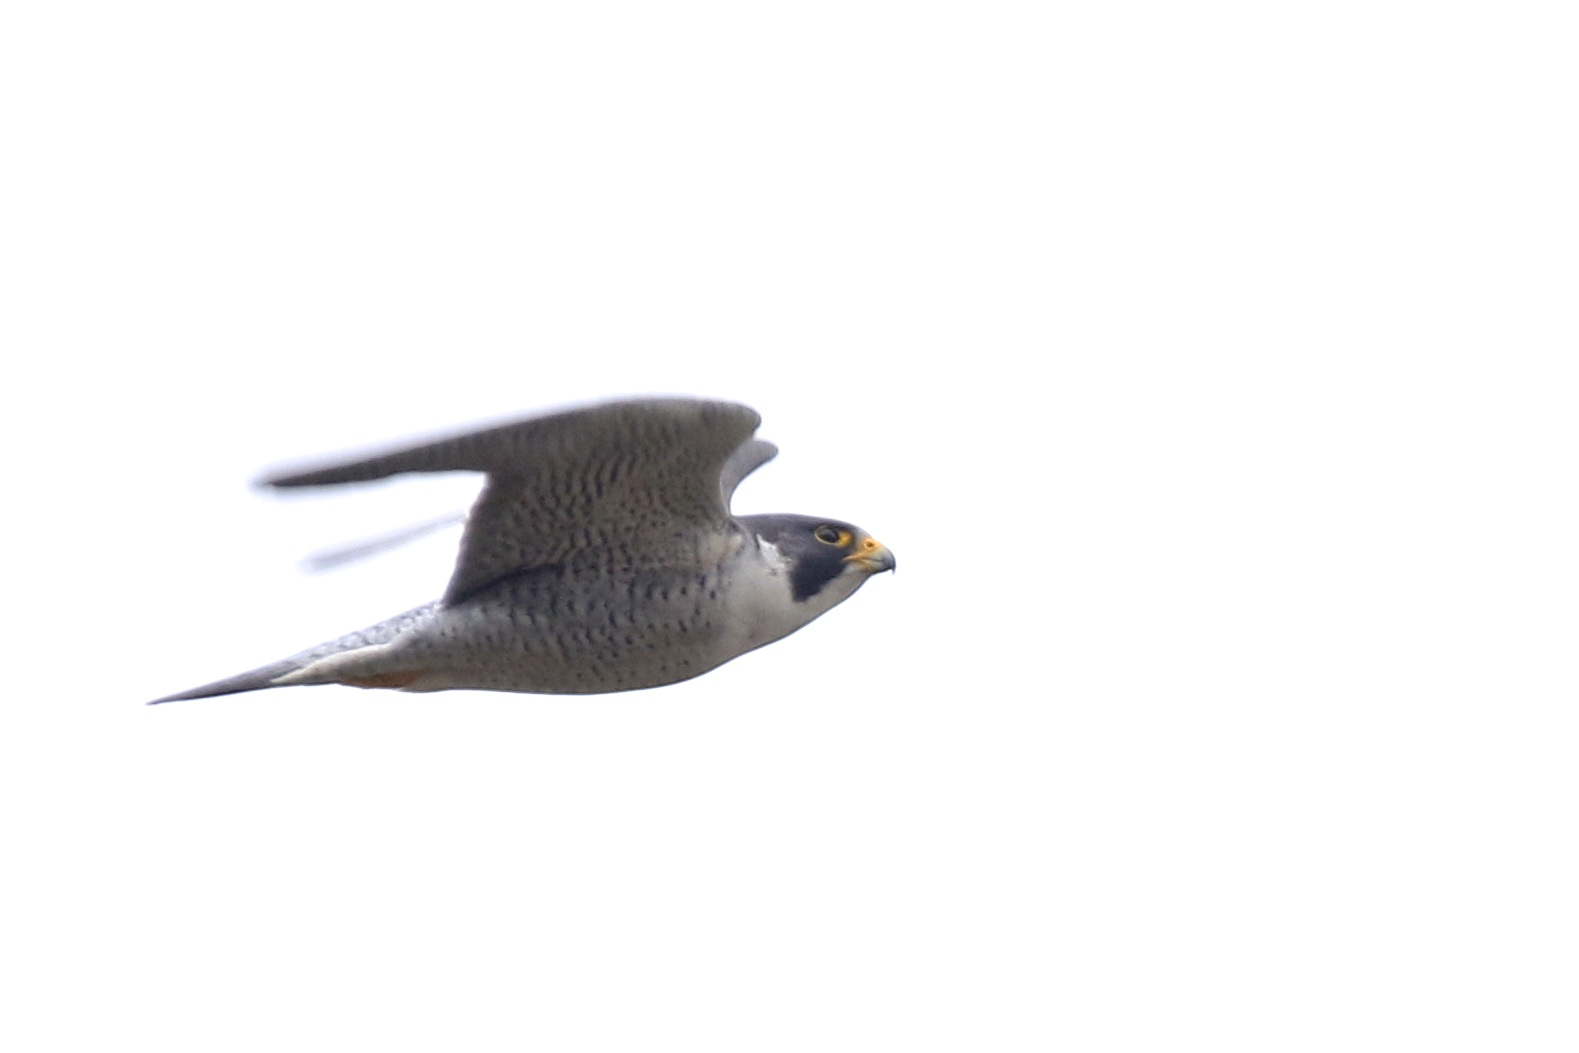 ~A male Peregrine Falcon shoots by at a rapid pace, Orange County NY, 3/13/16.~